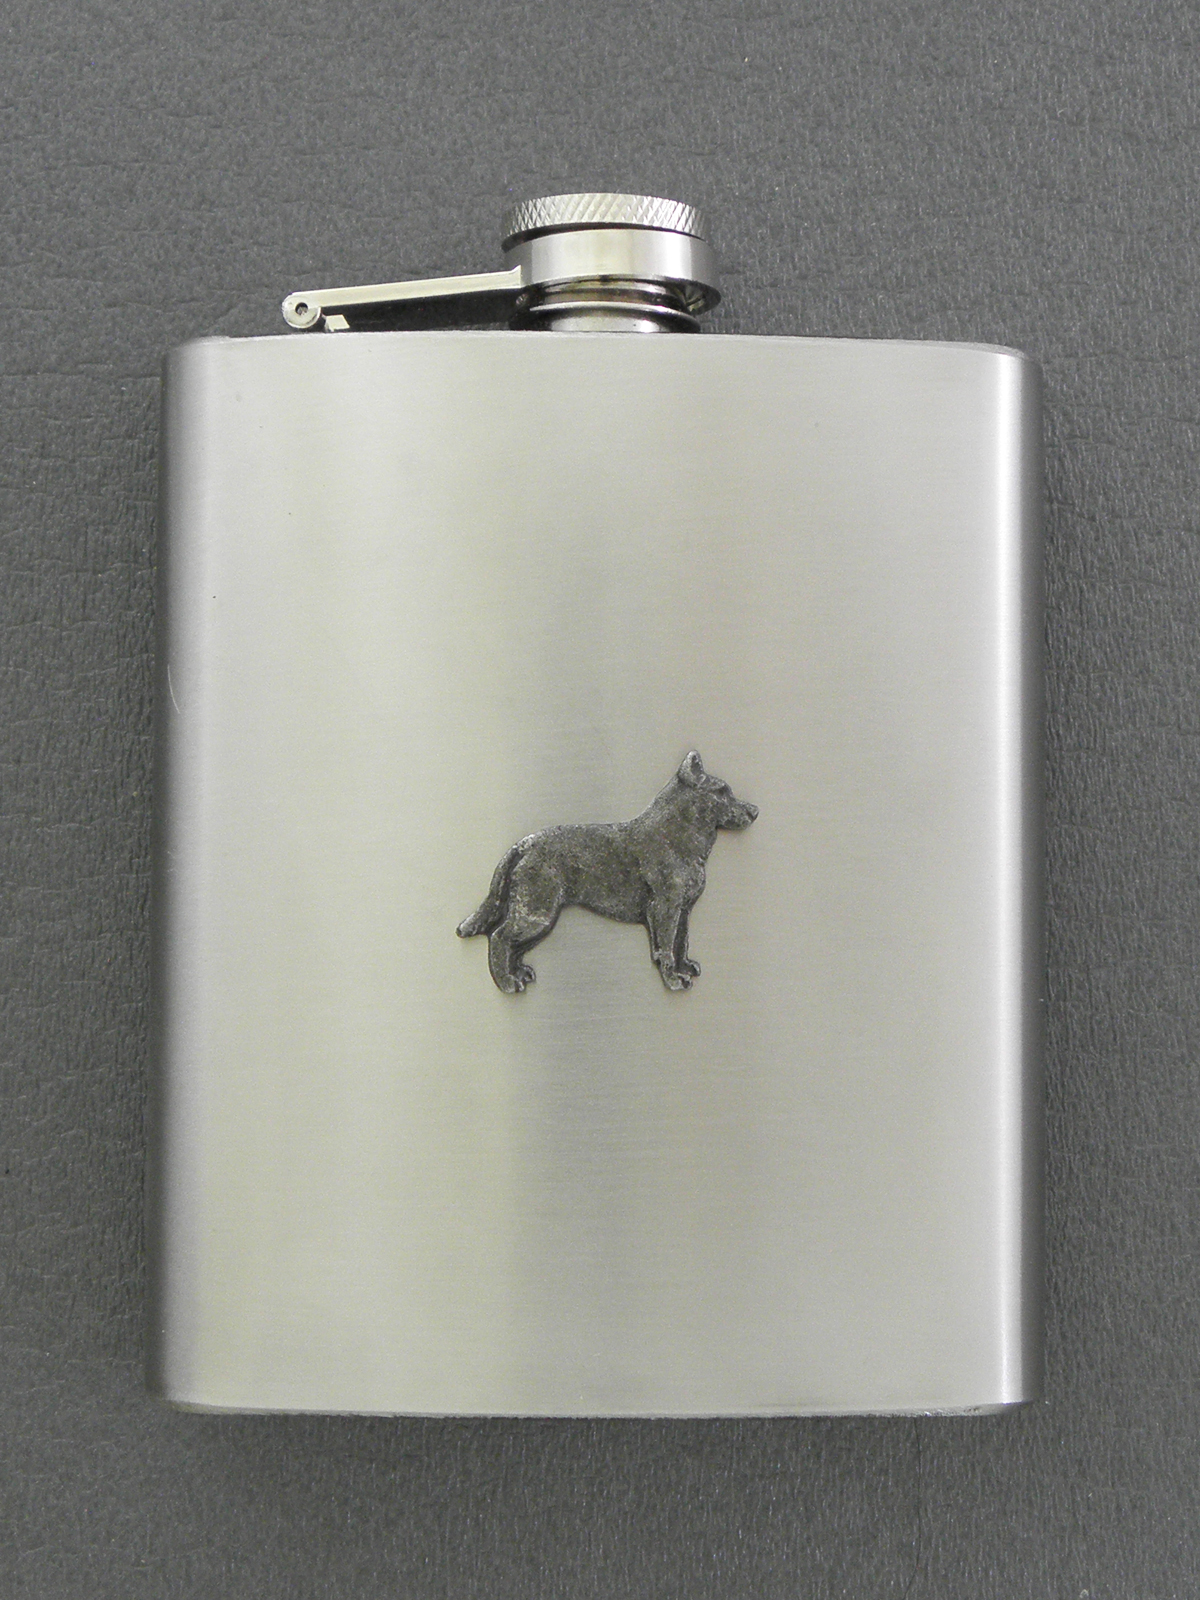 Australian Cattle Dog - Hip Flask Figure